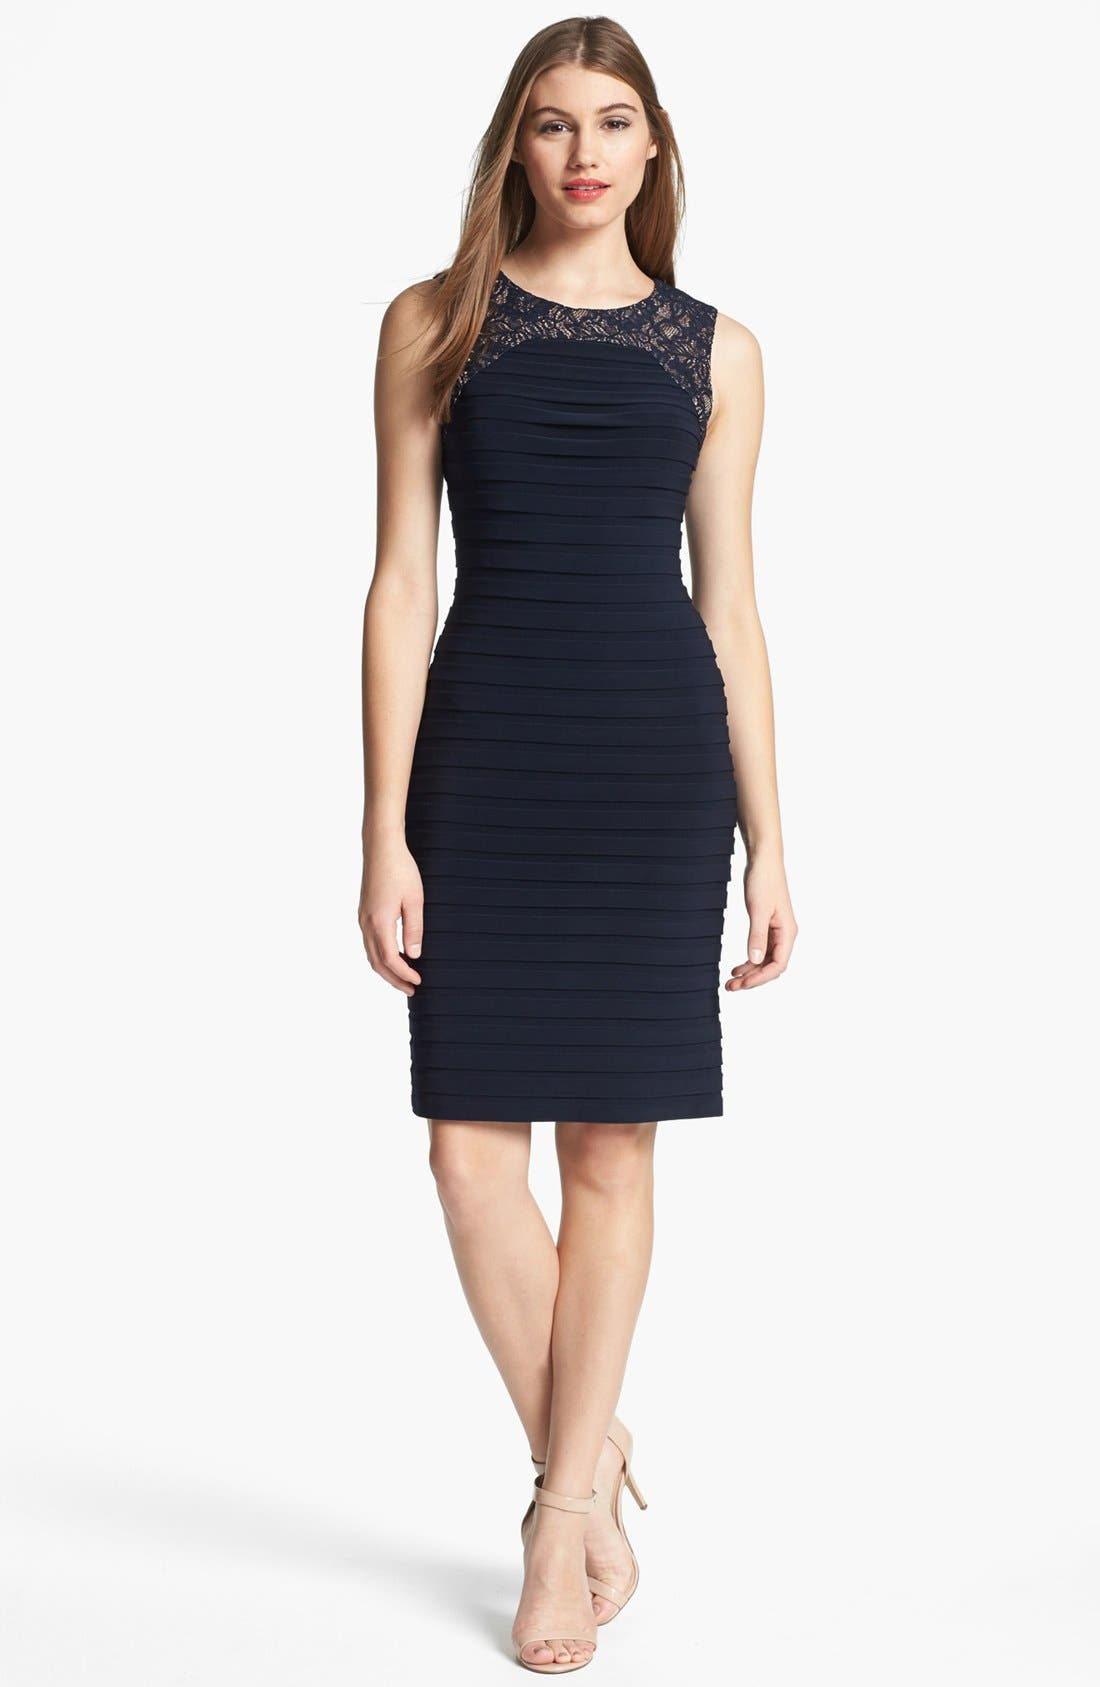 Alternate Image 1 Selected - Adrianna Papell Lace Yoke Shutter Pleat Sheath Dress (Petite)